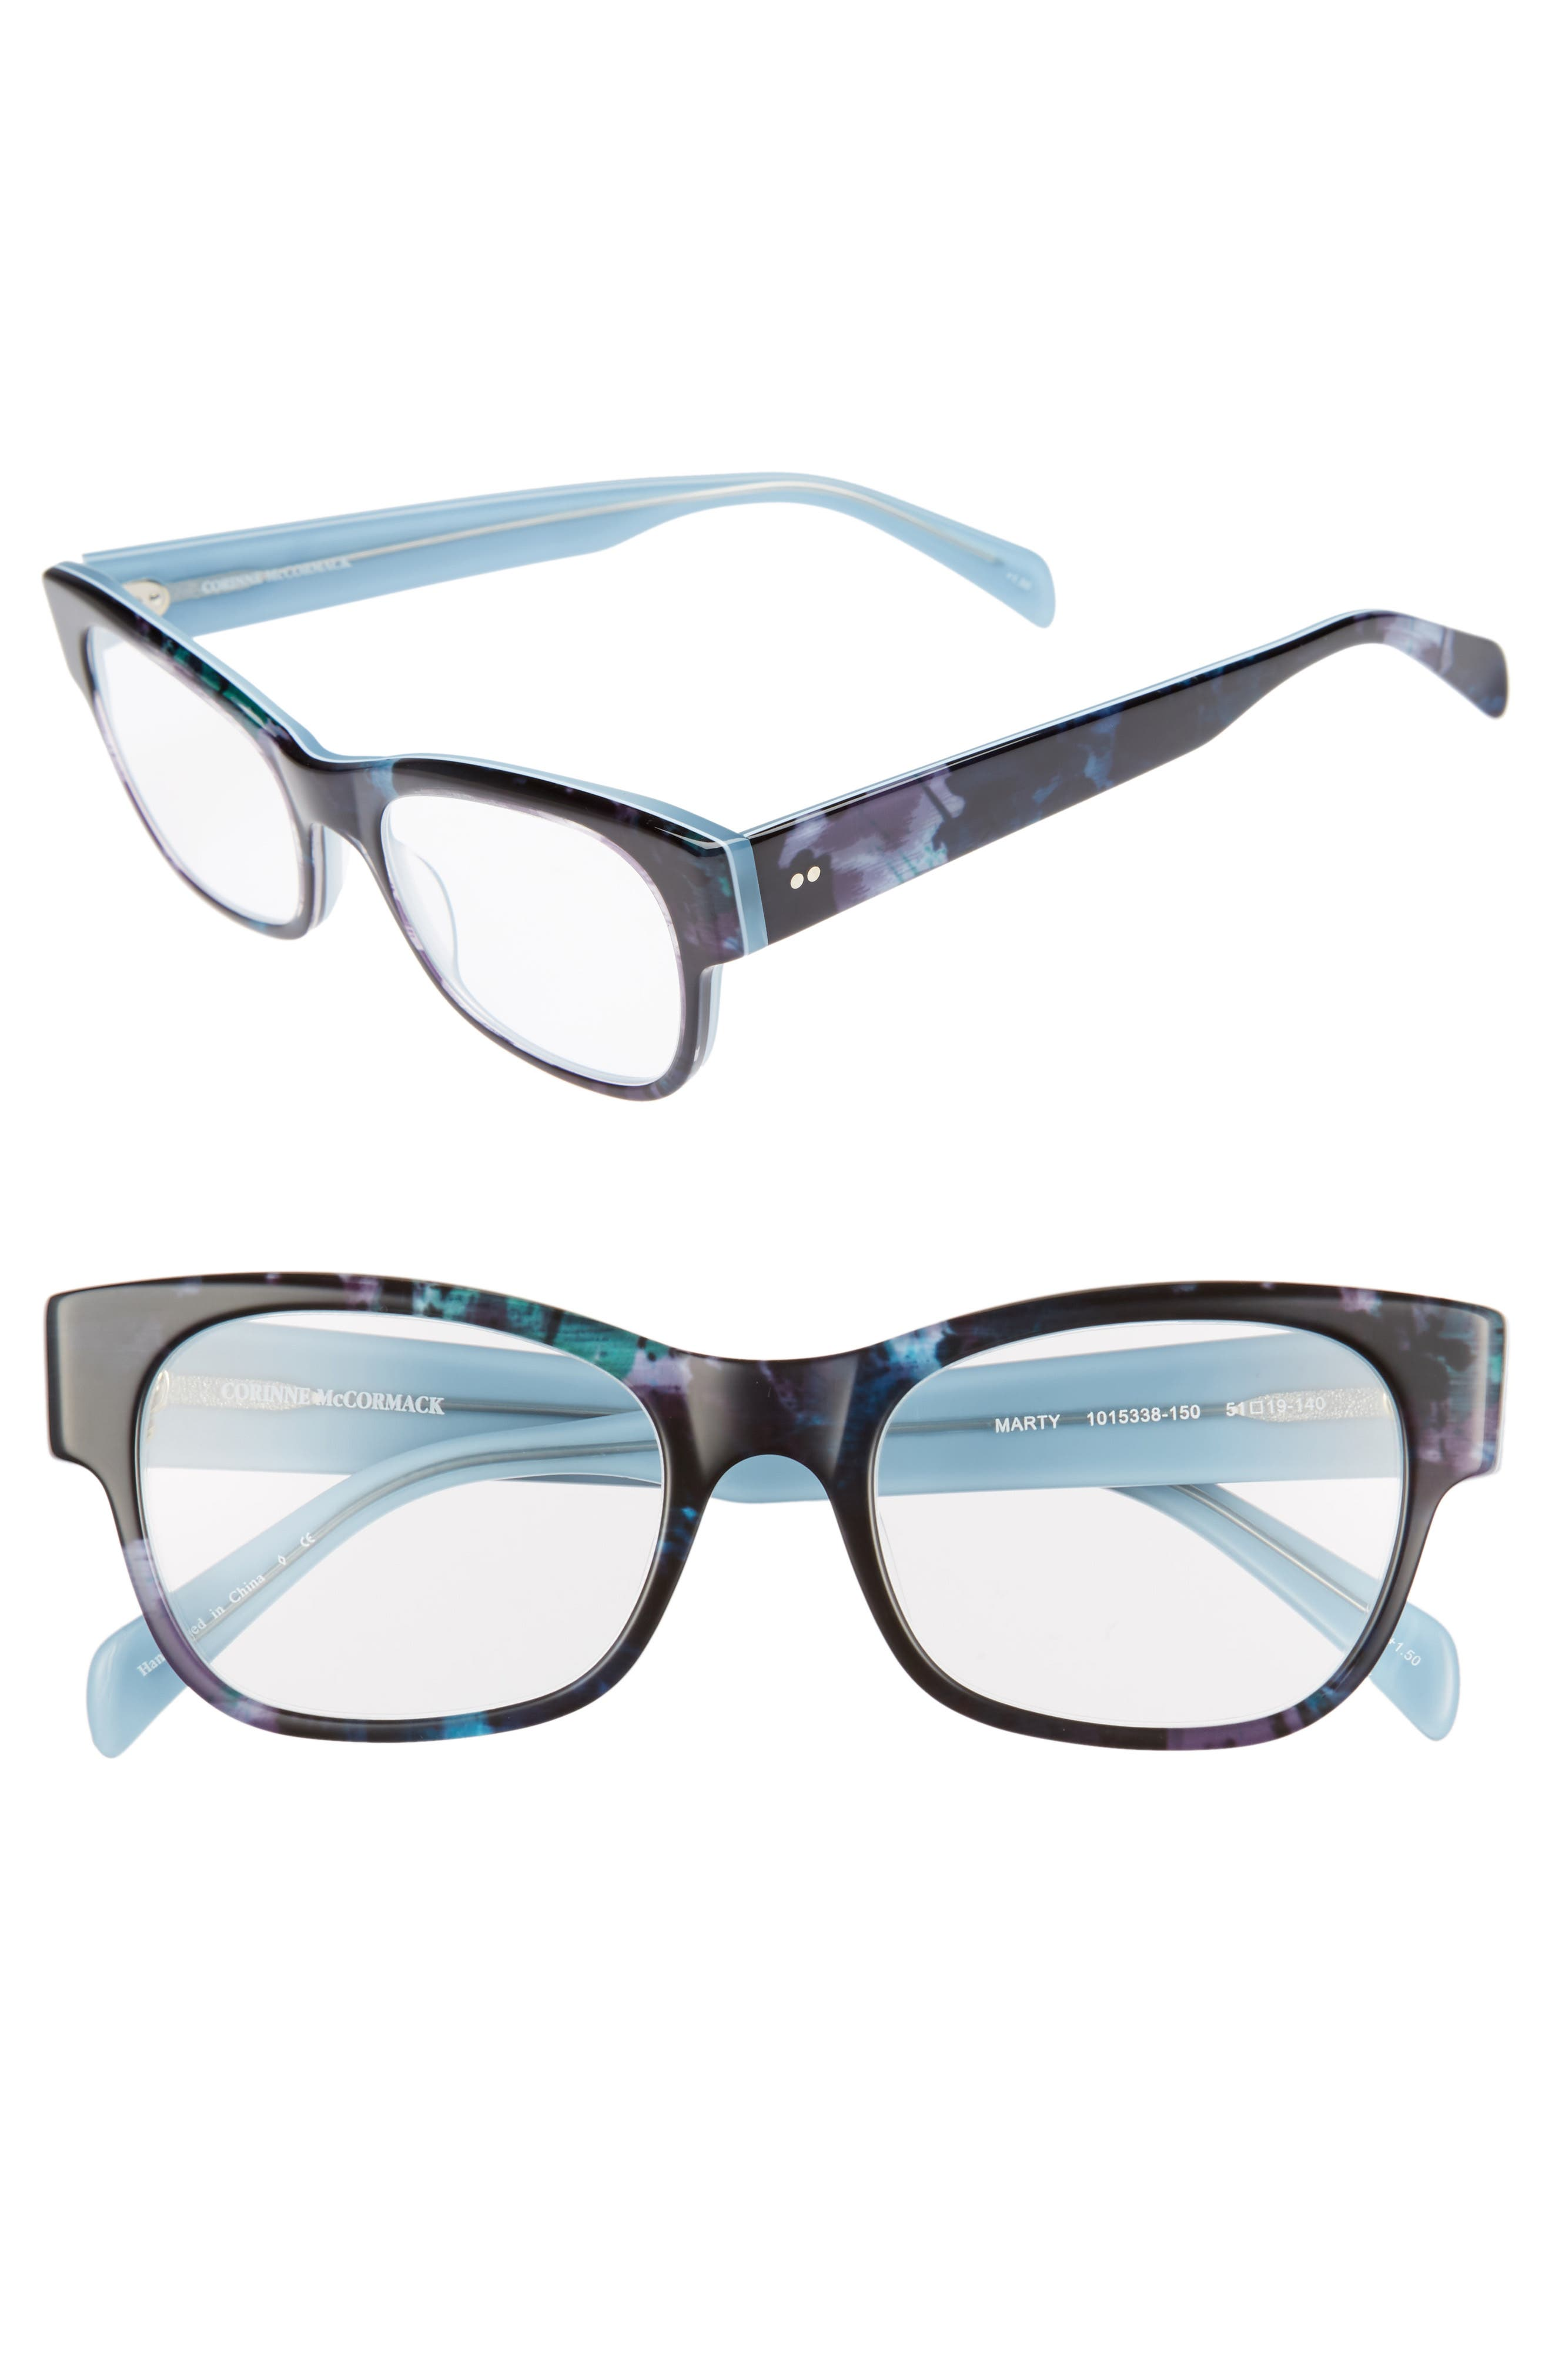 Main Image - Corinne McCormack Marty 51mm Reading Glasses